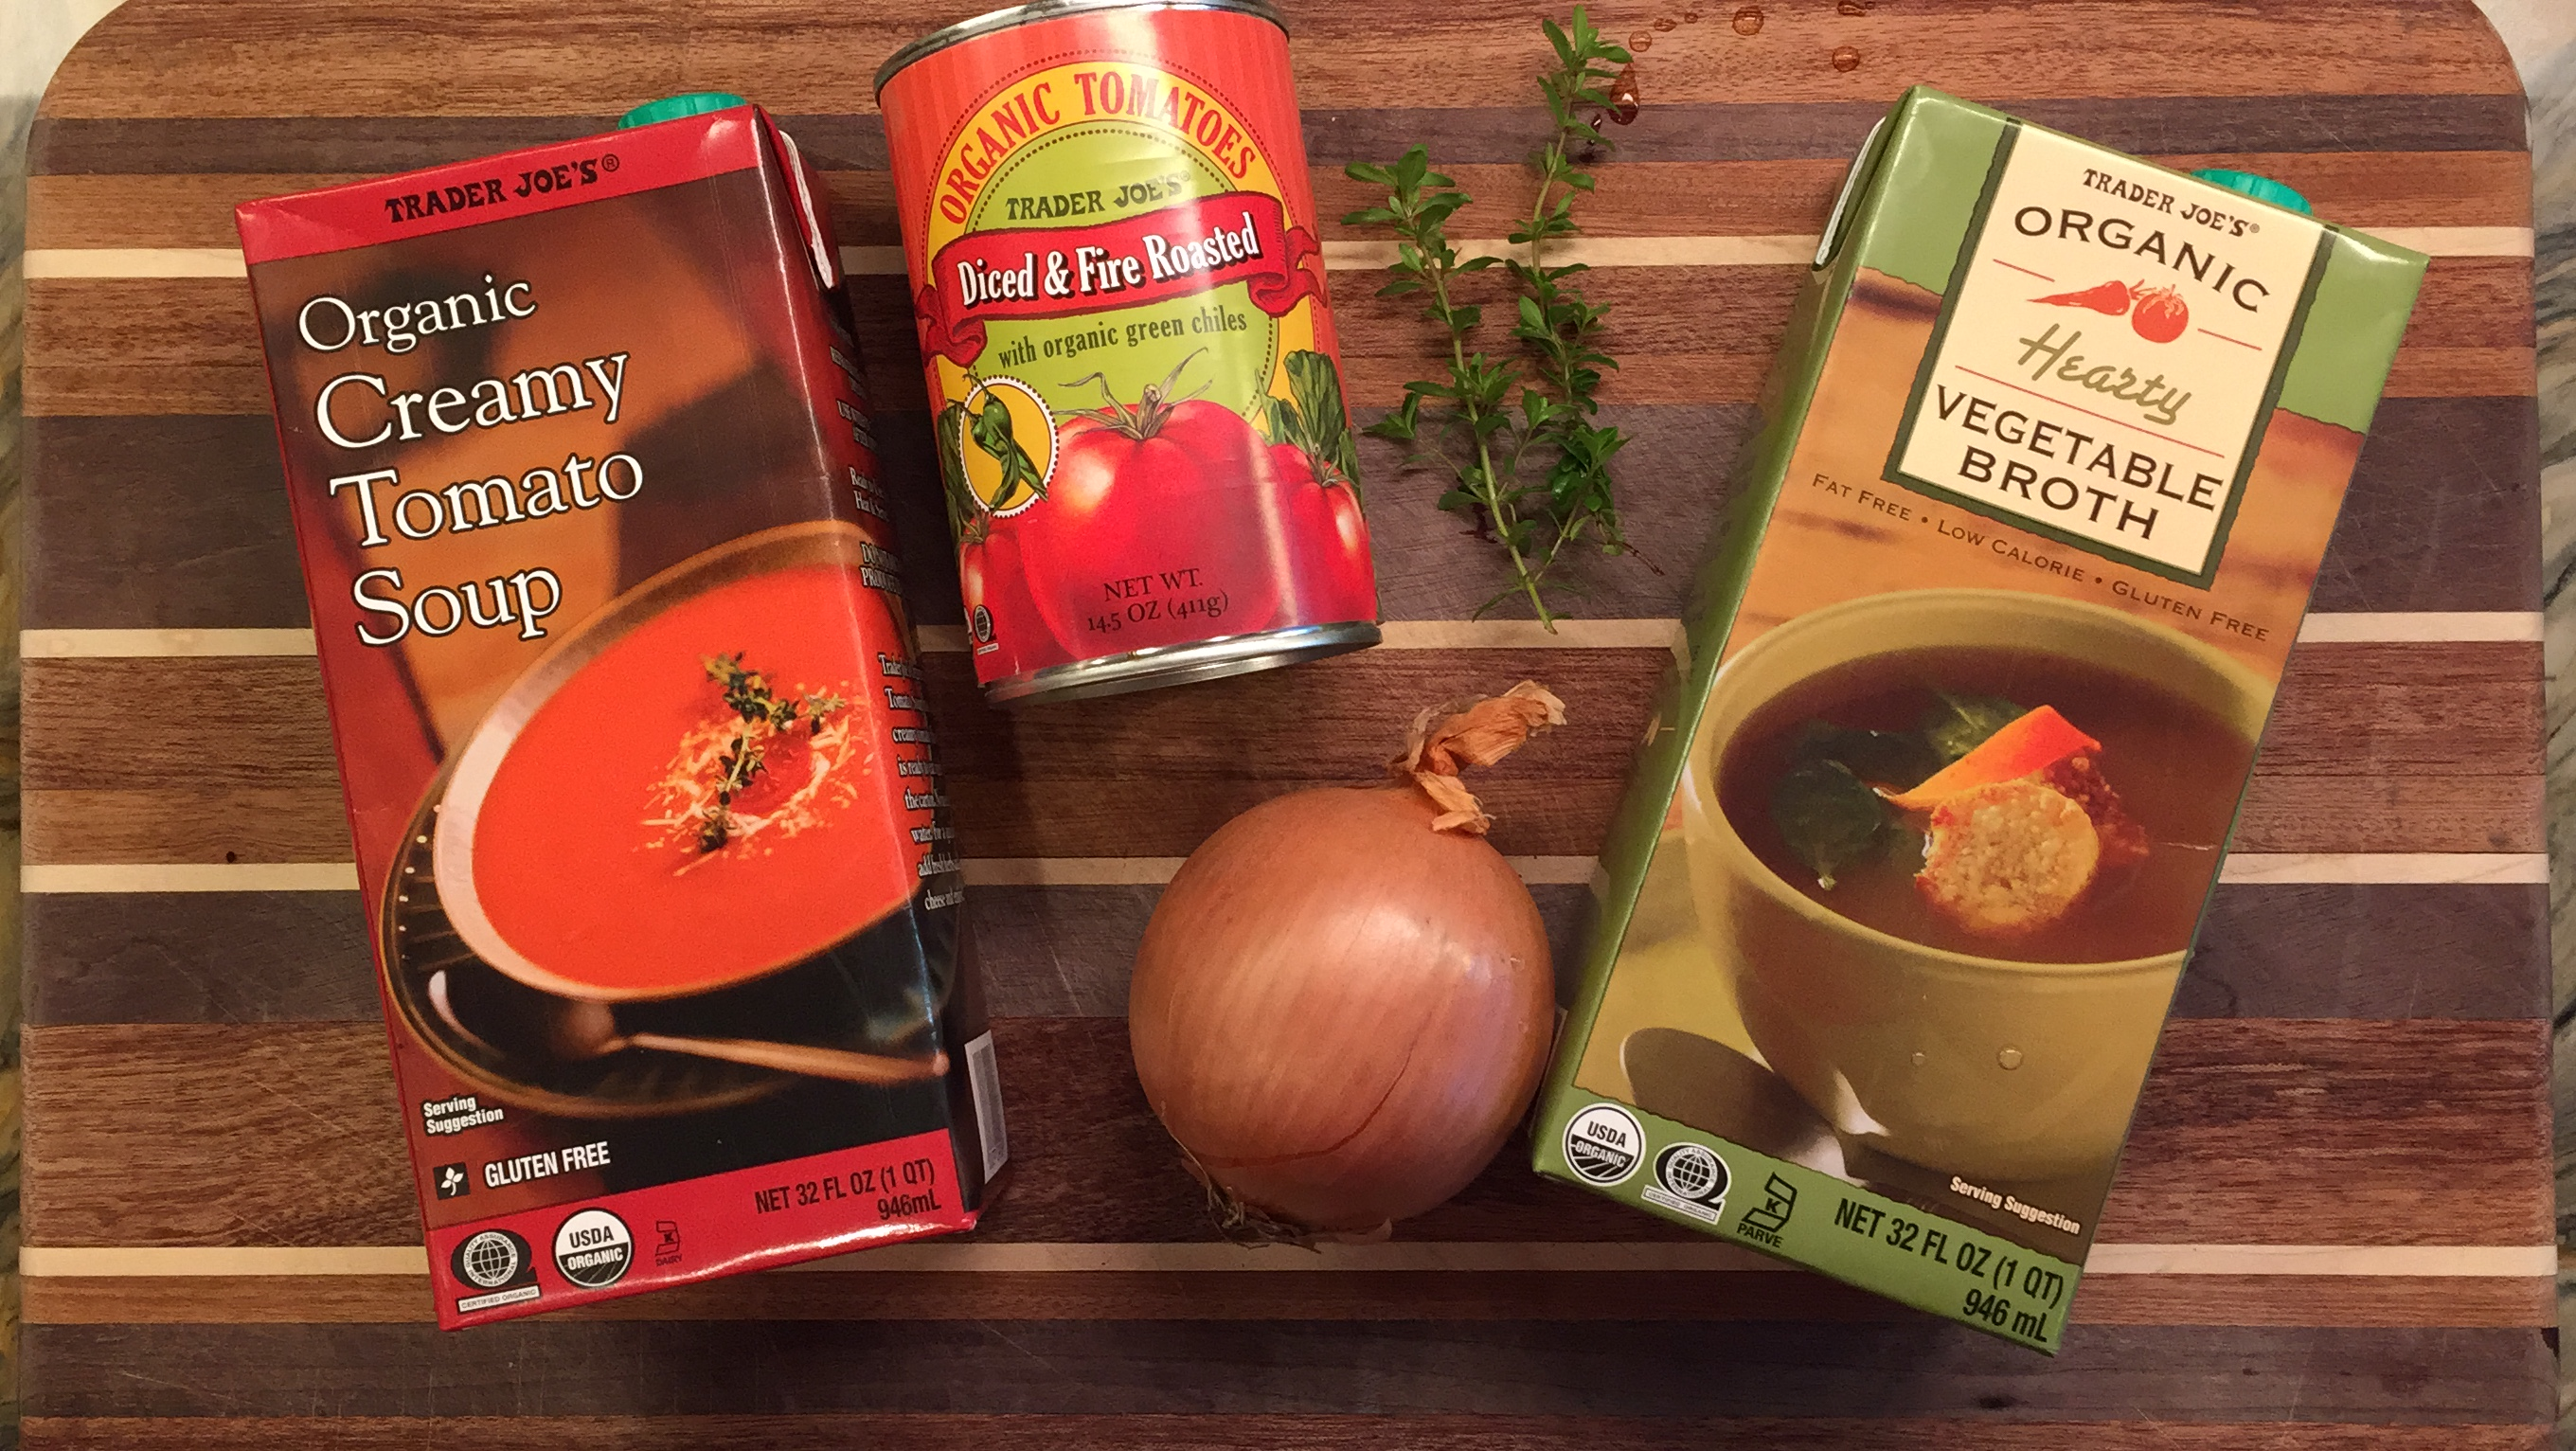 4 INGREDIENT TOMATO SOUP